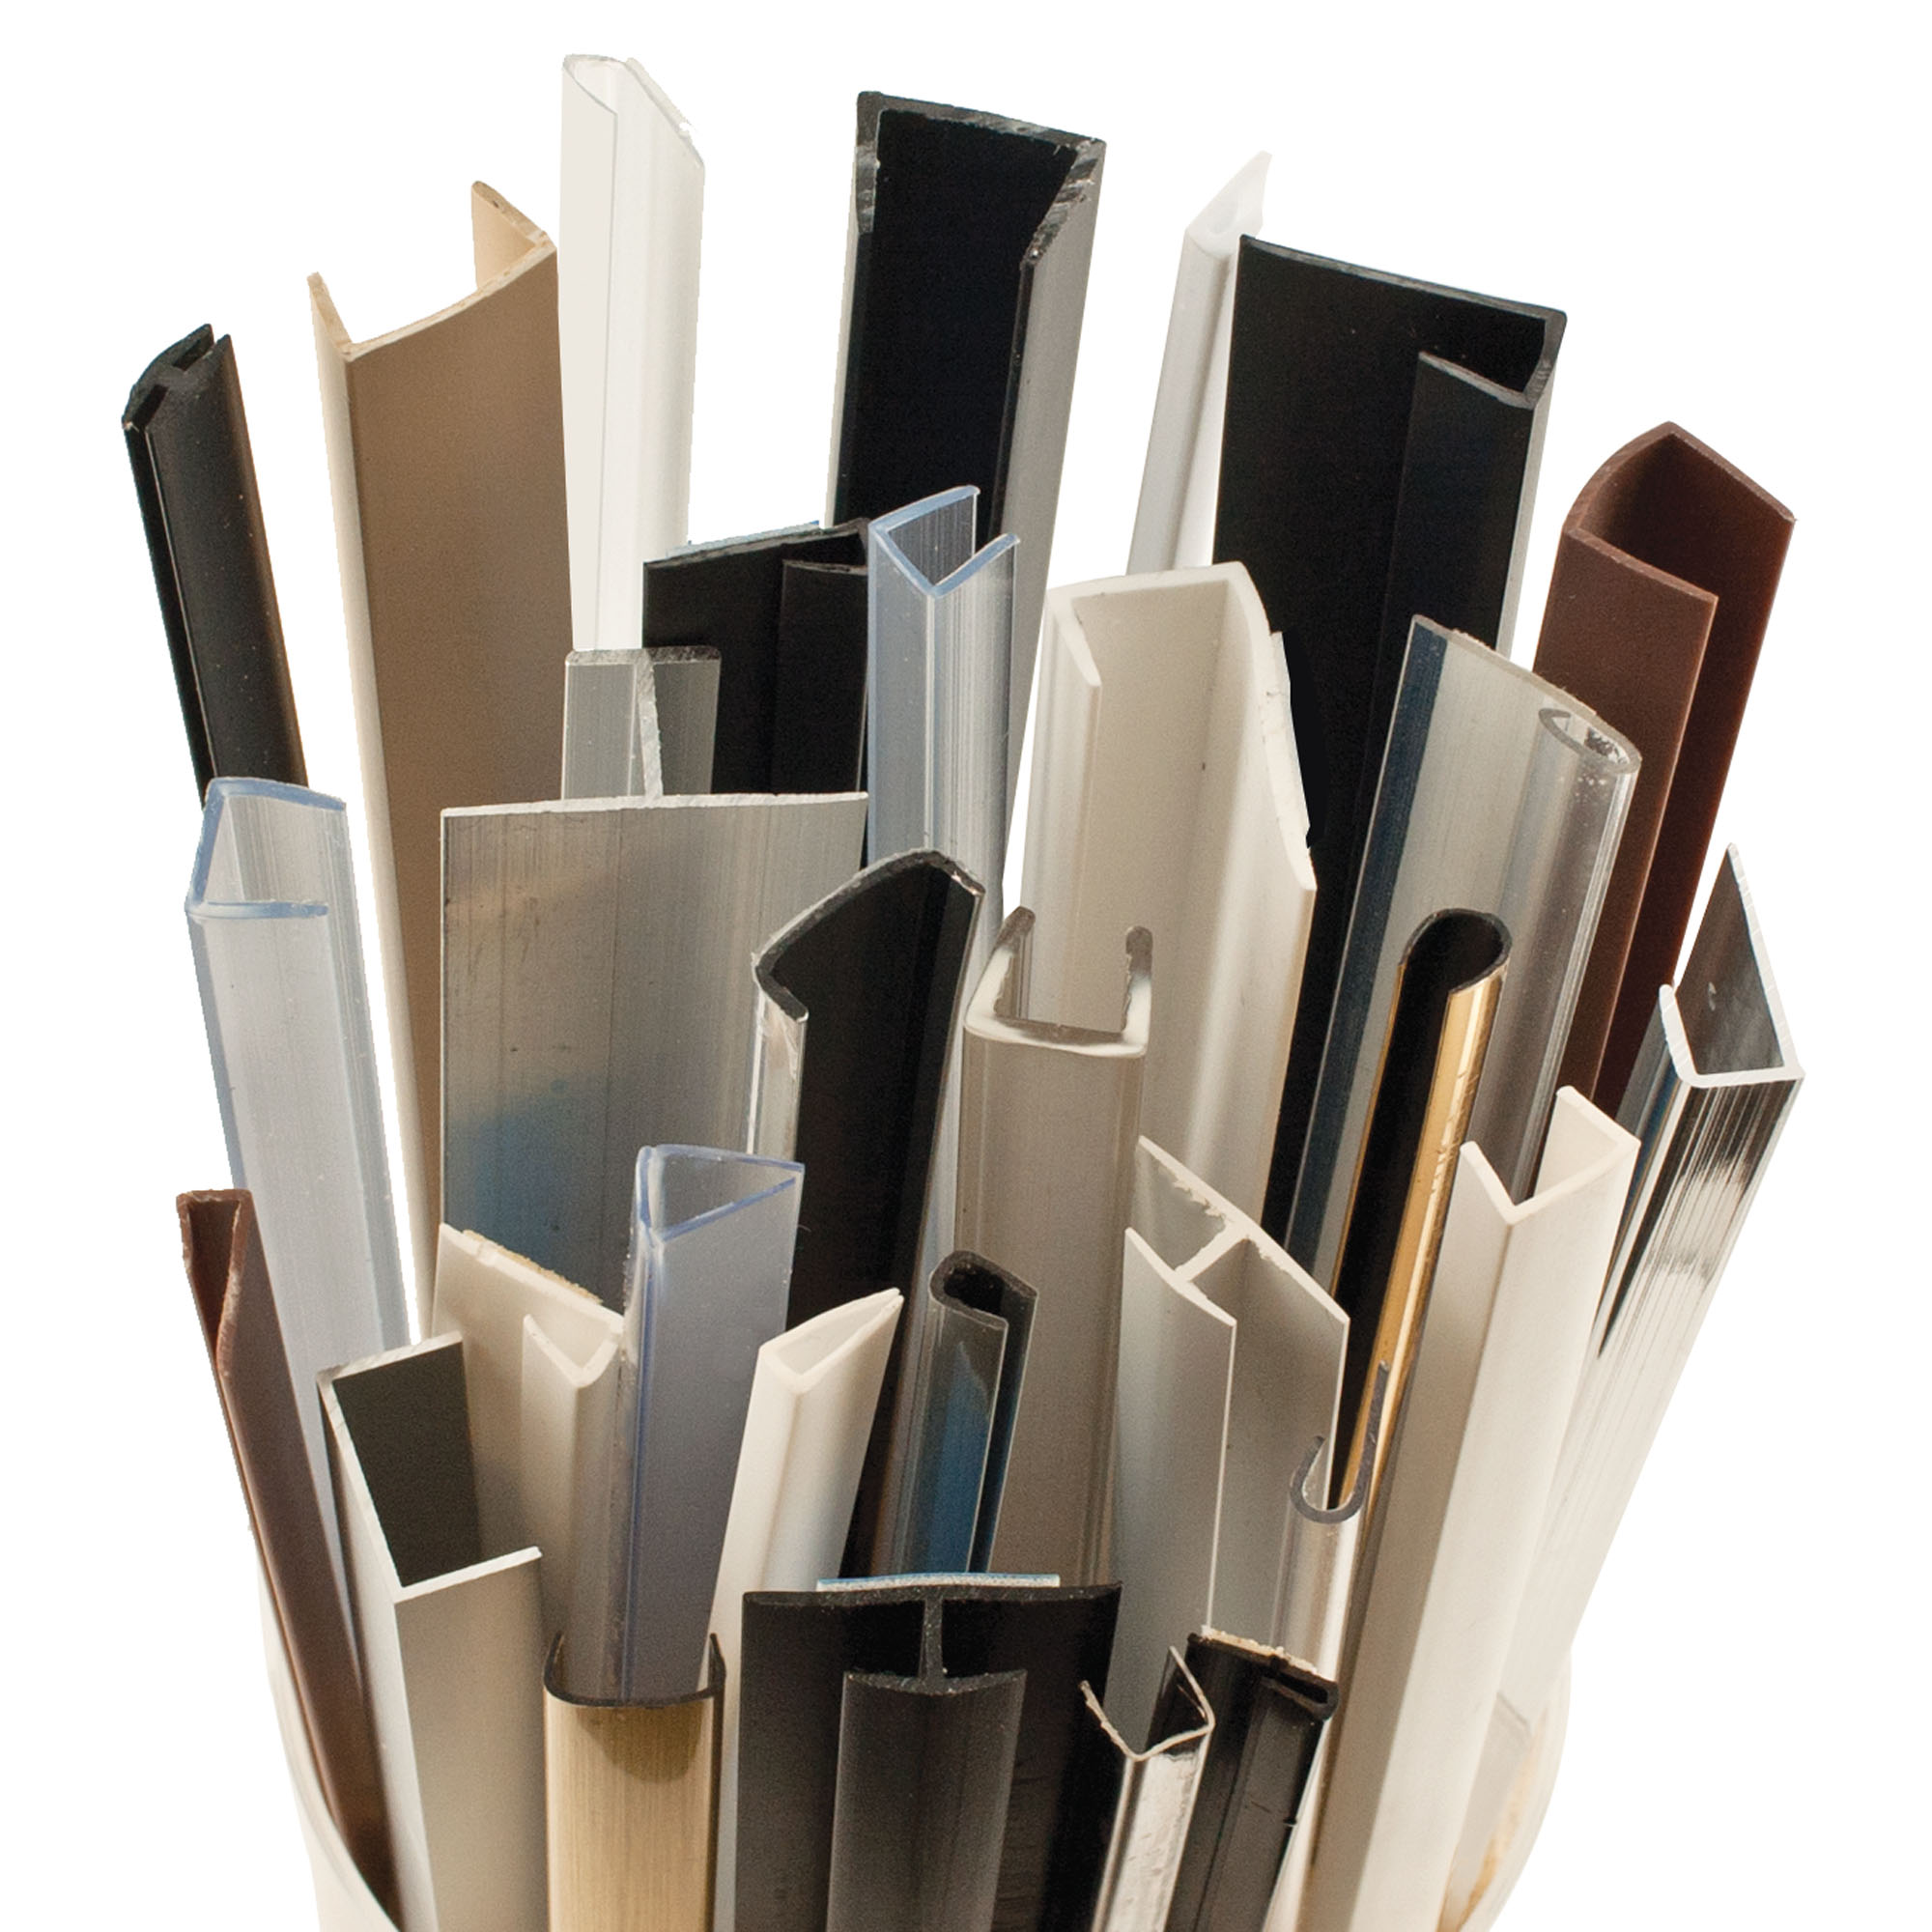 aluminum, stainless steel, and brass extruded angle mouldings and trims